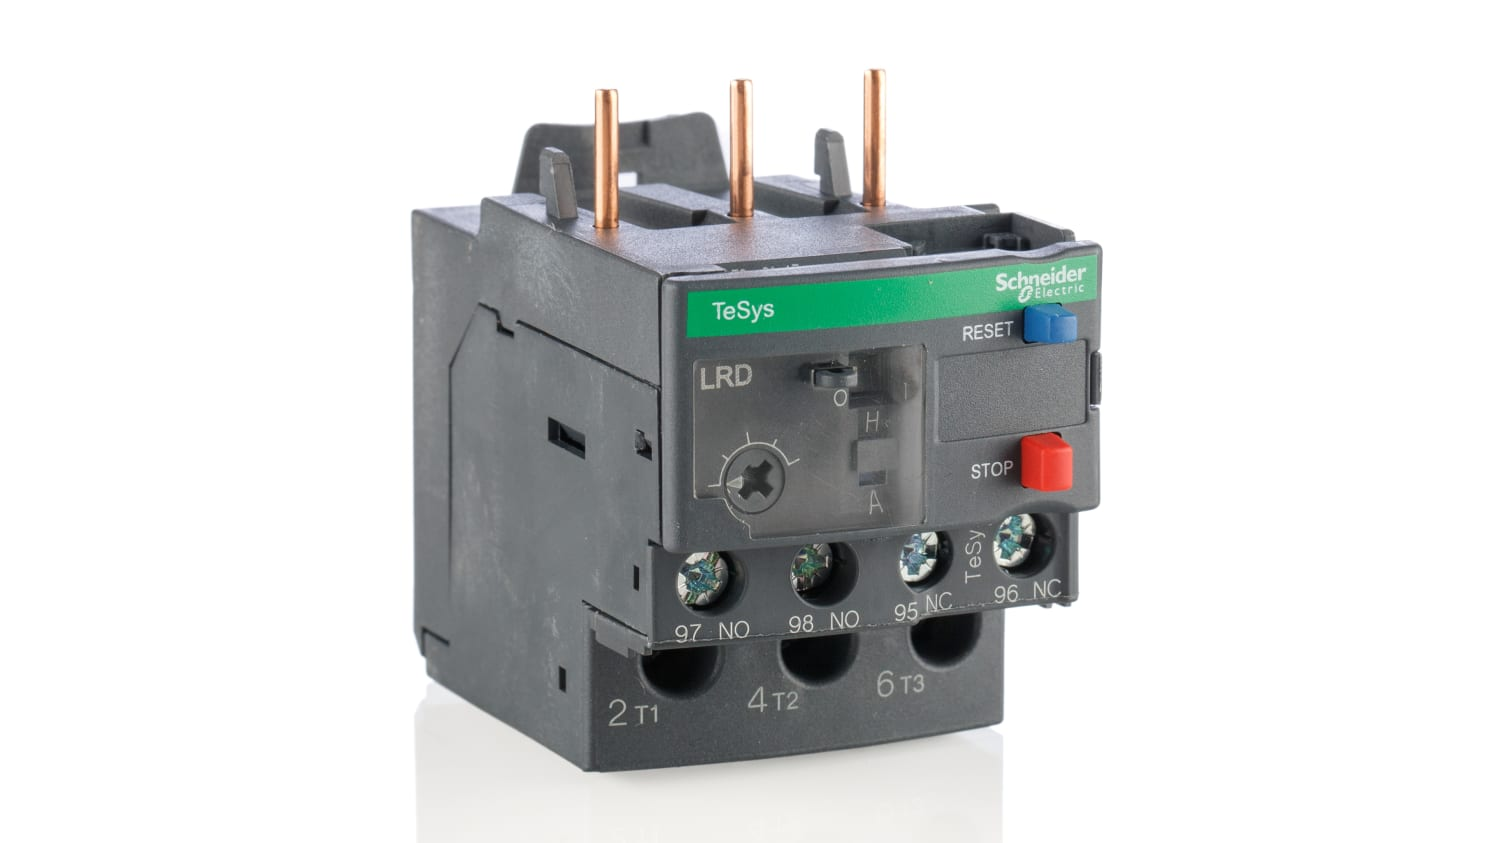 LRD21   Schneider Electric Thermal Overload Relay - 1NO + 1NC, 12 → 18 A  F.L.C, 18 A Contact Rating, 3P   RS Components